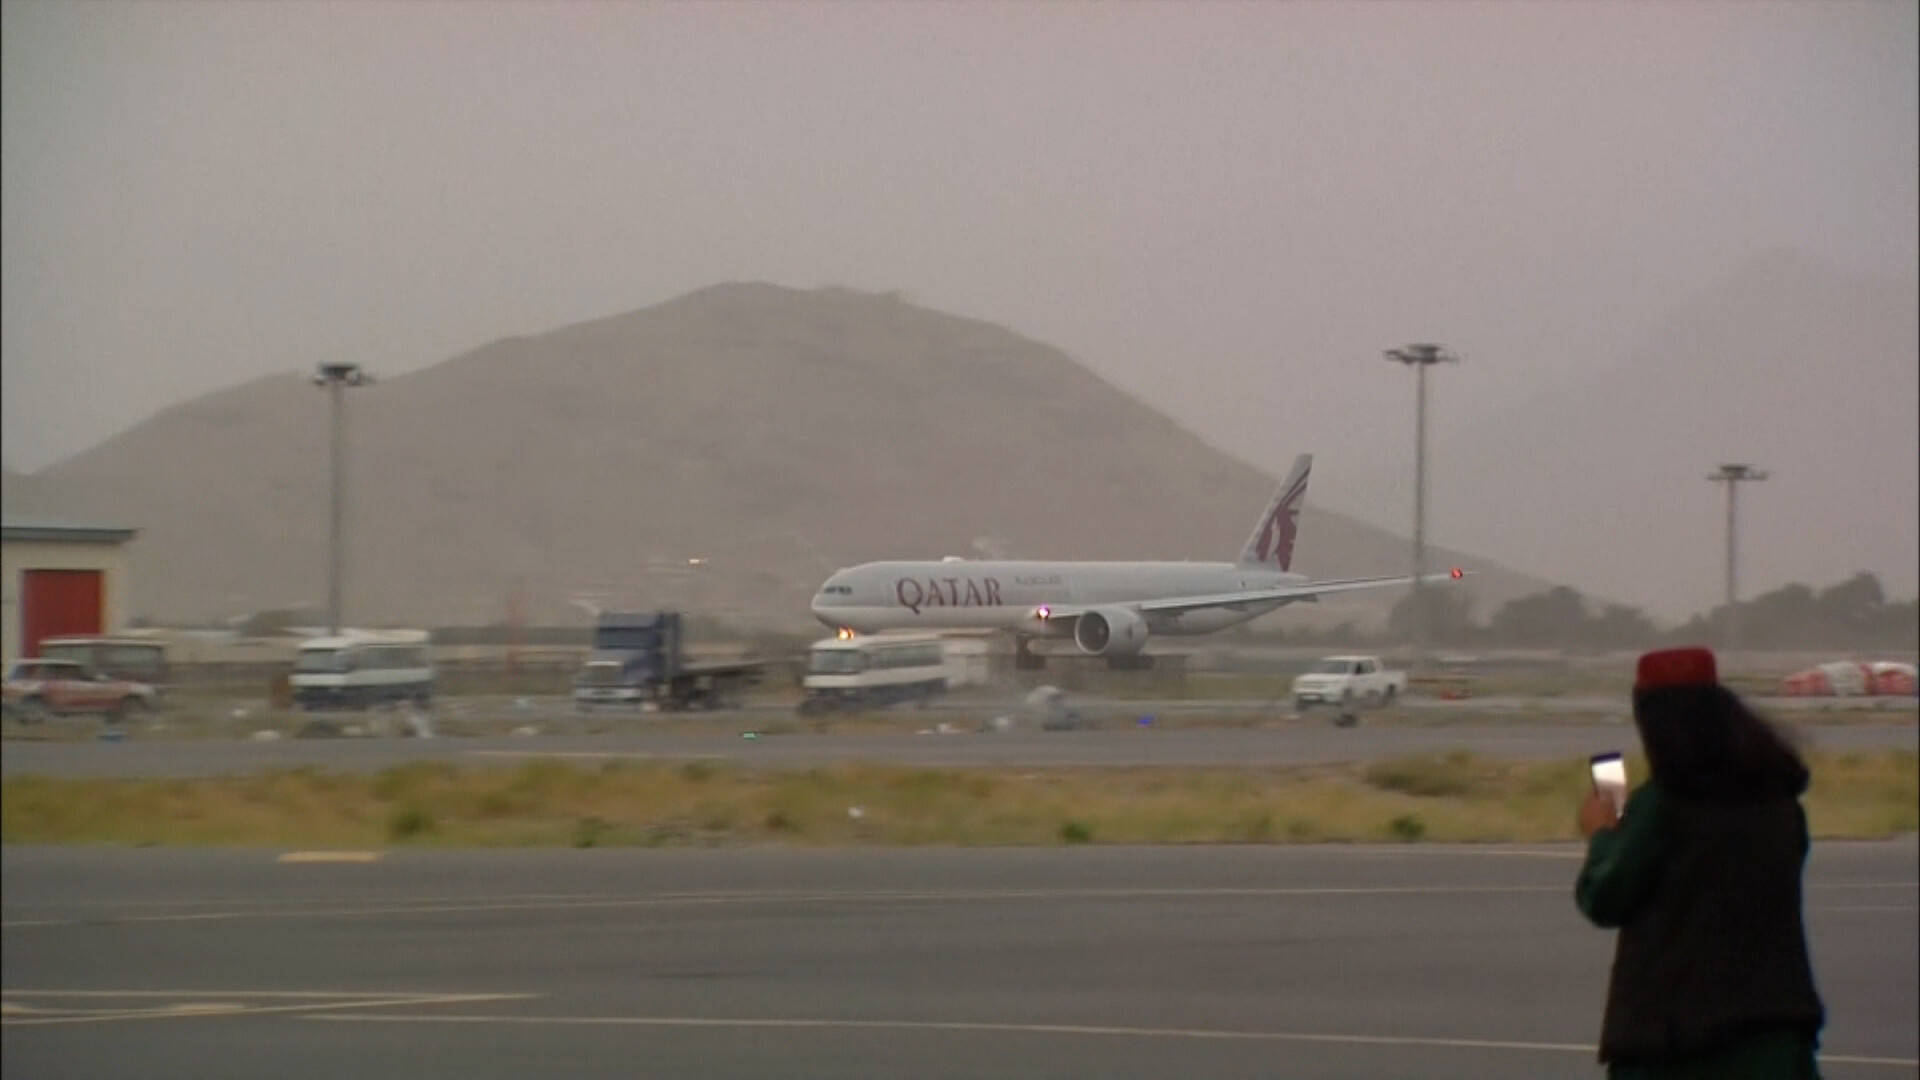 More than 100 Americans evacuated from Afghanistan on private charter, organizations say